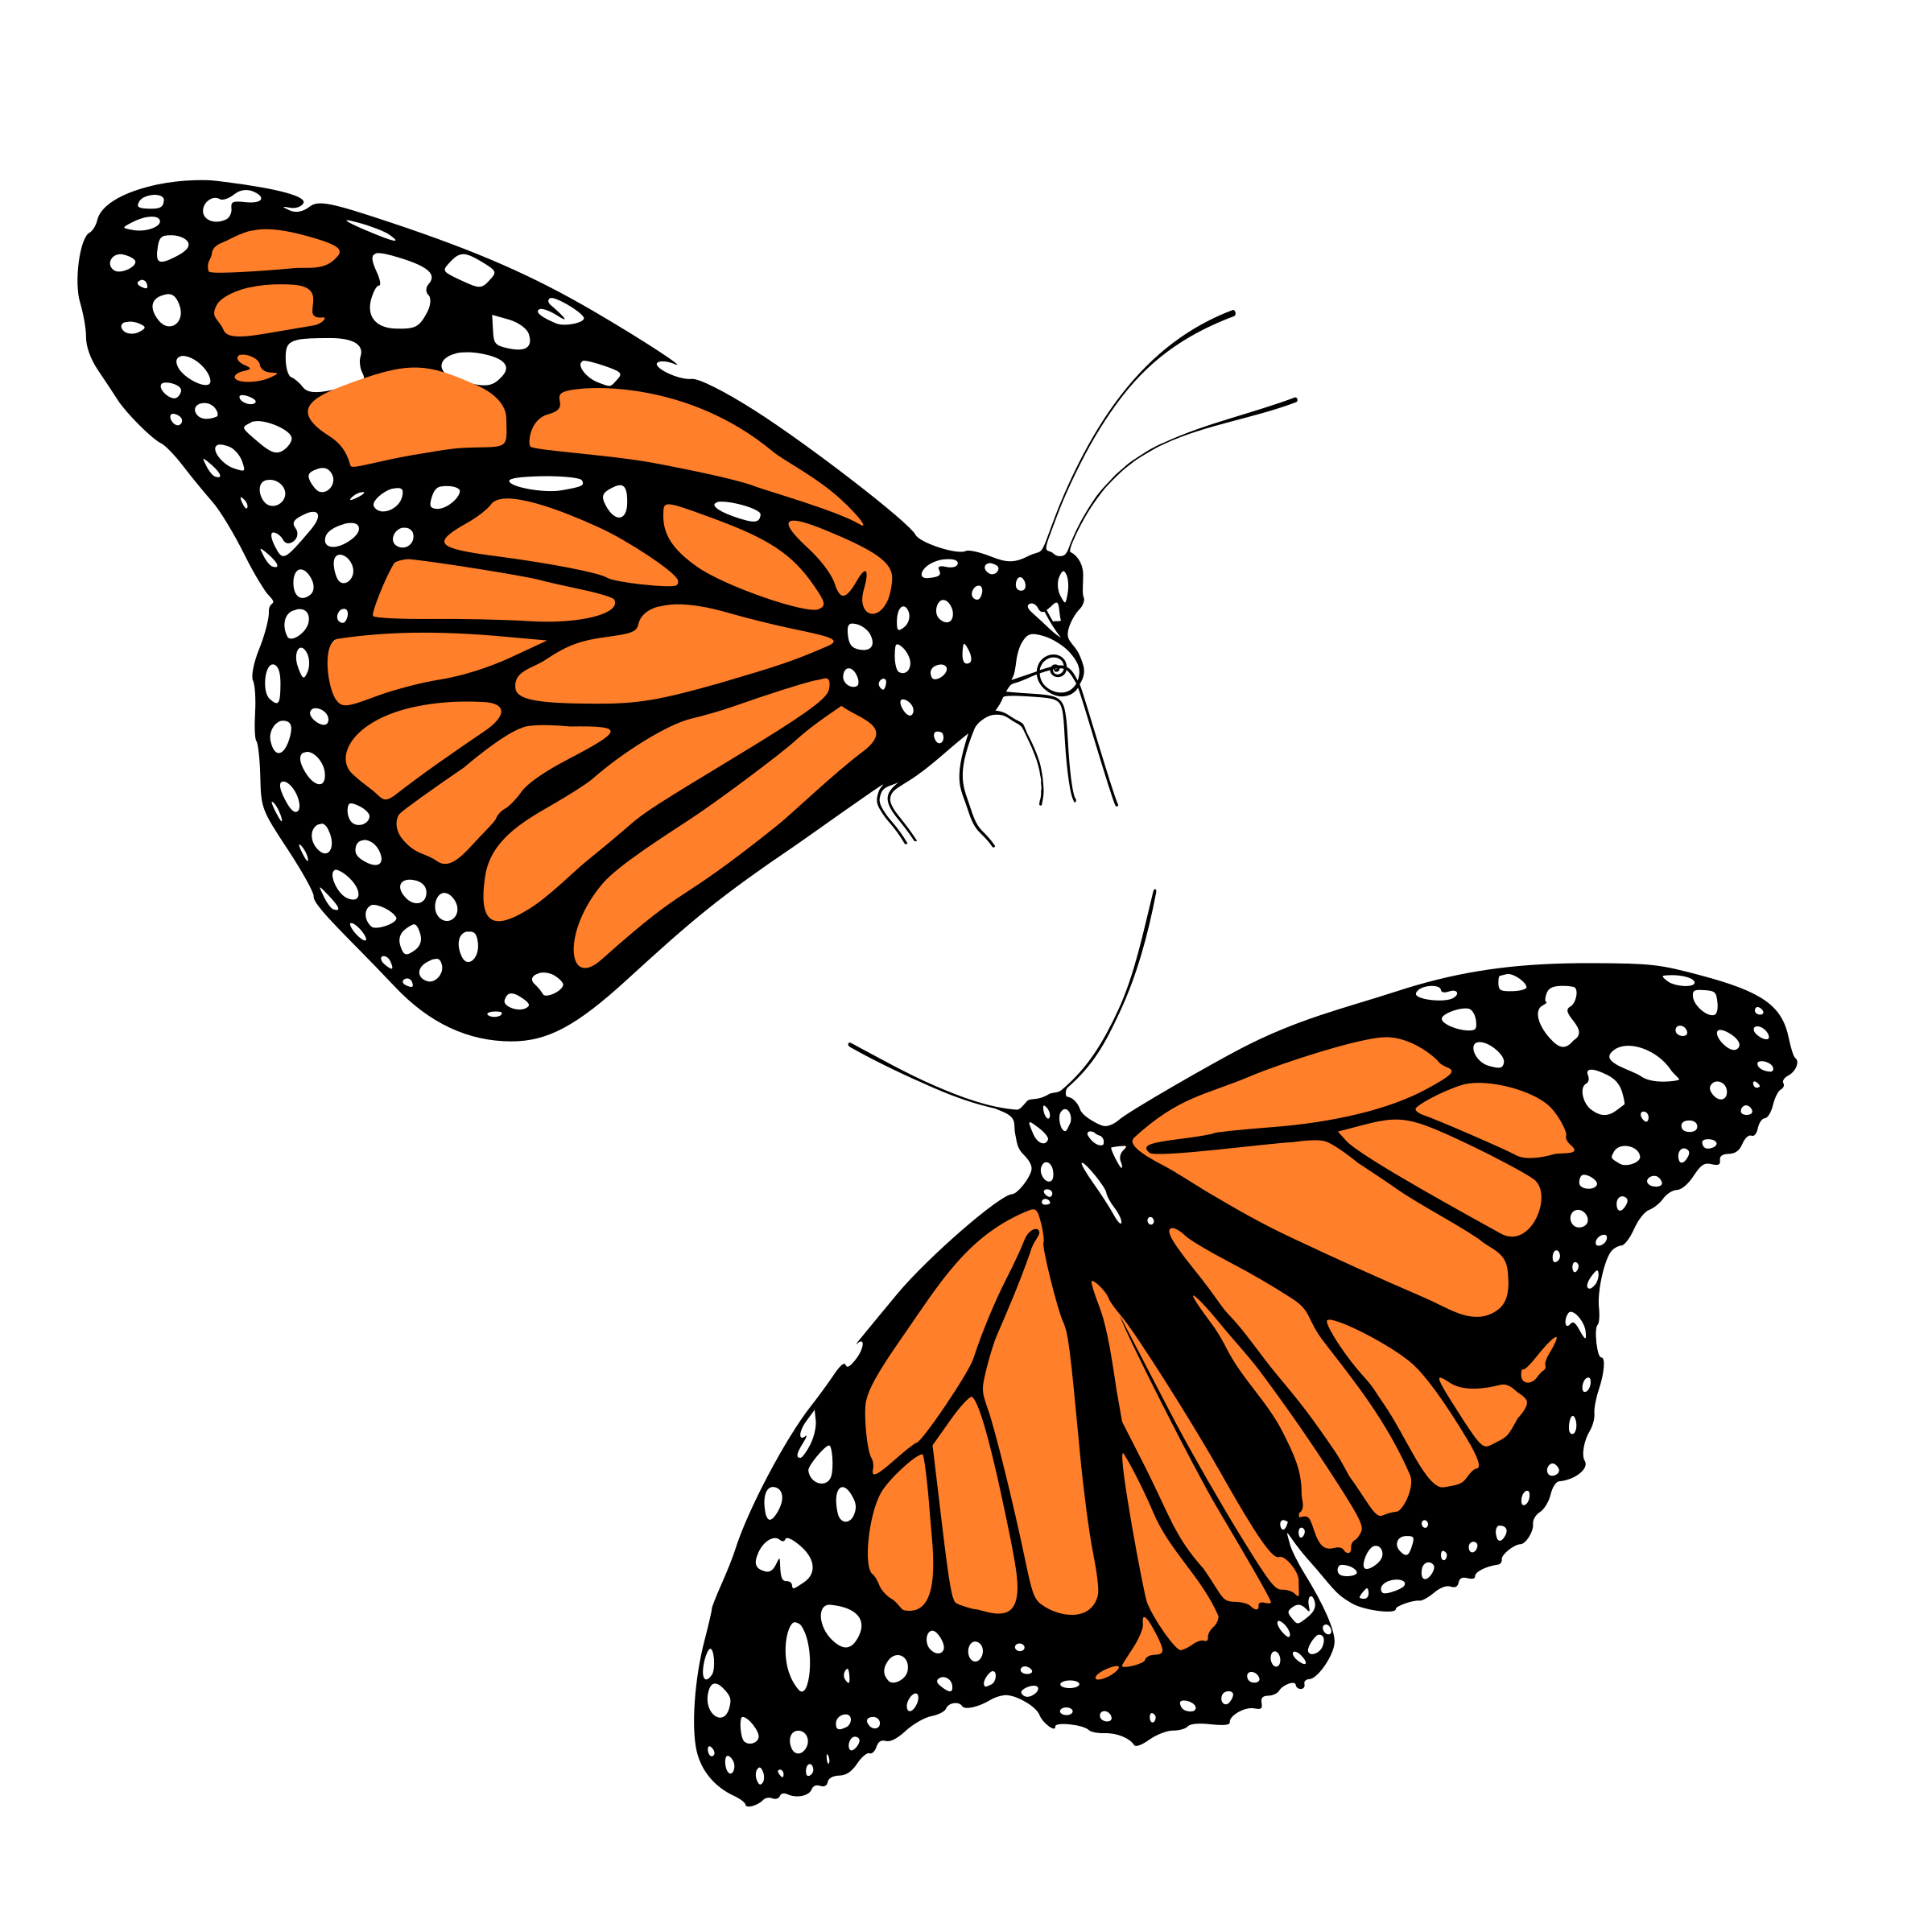 Monarch butterflies by franzi